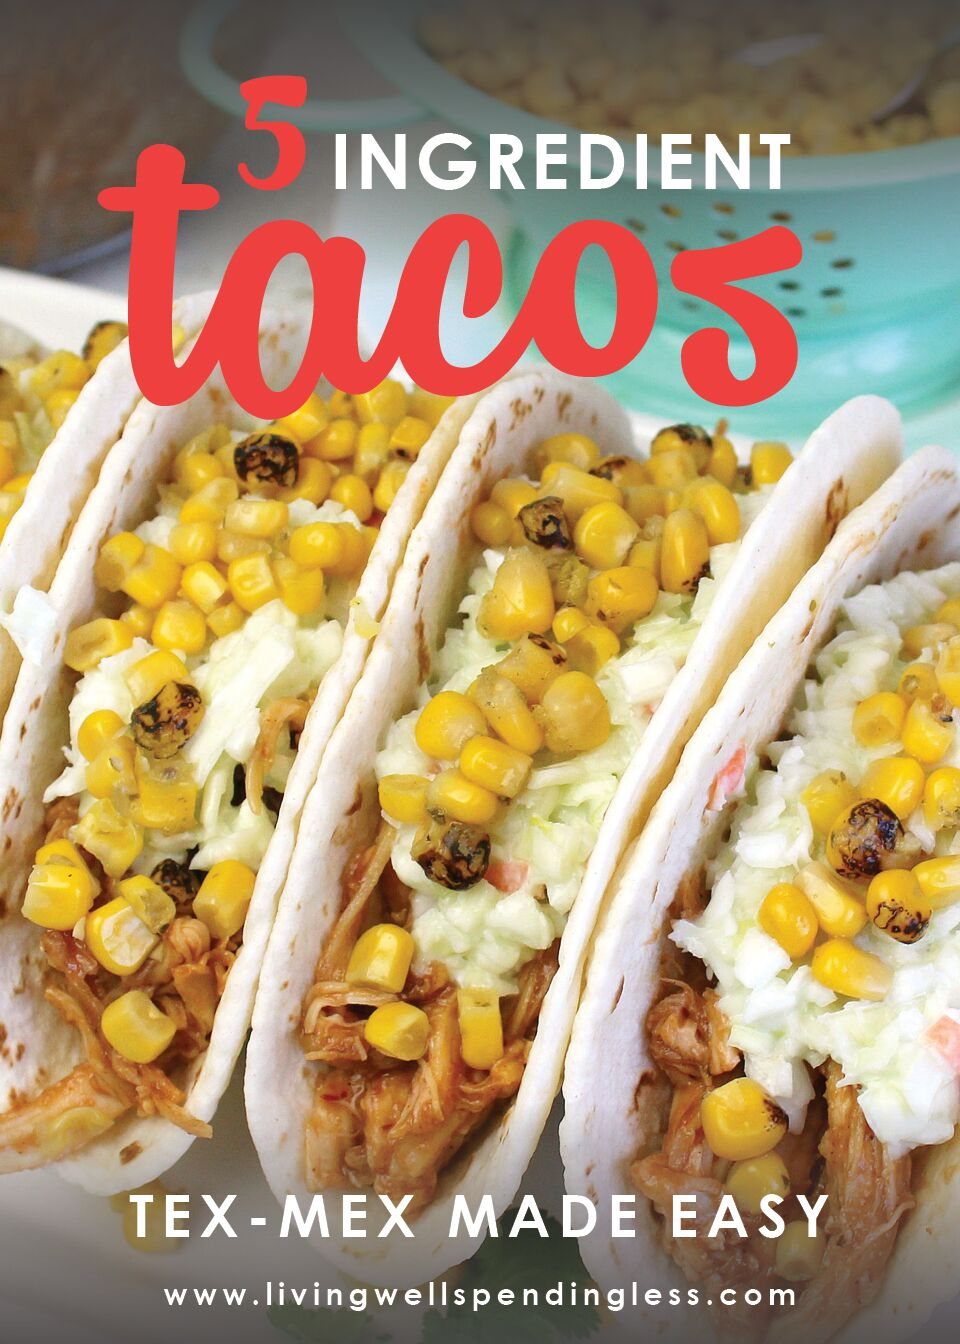 Want a flavorful and simple dinner idea that only uses 5 ingredients? Whether you are walking in the door late from work or needing to eat quickly to get the kids to soccer, these quick tacos are for you!